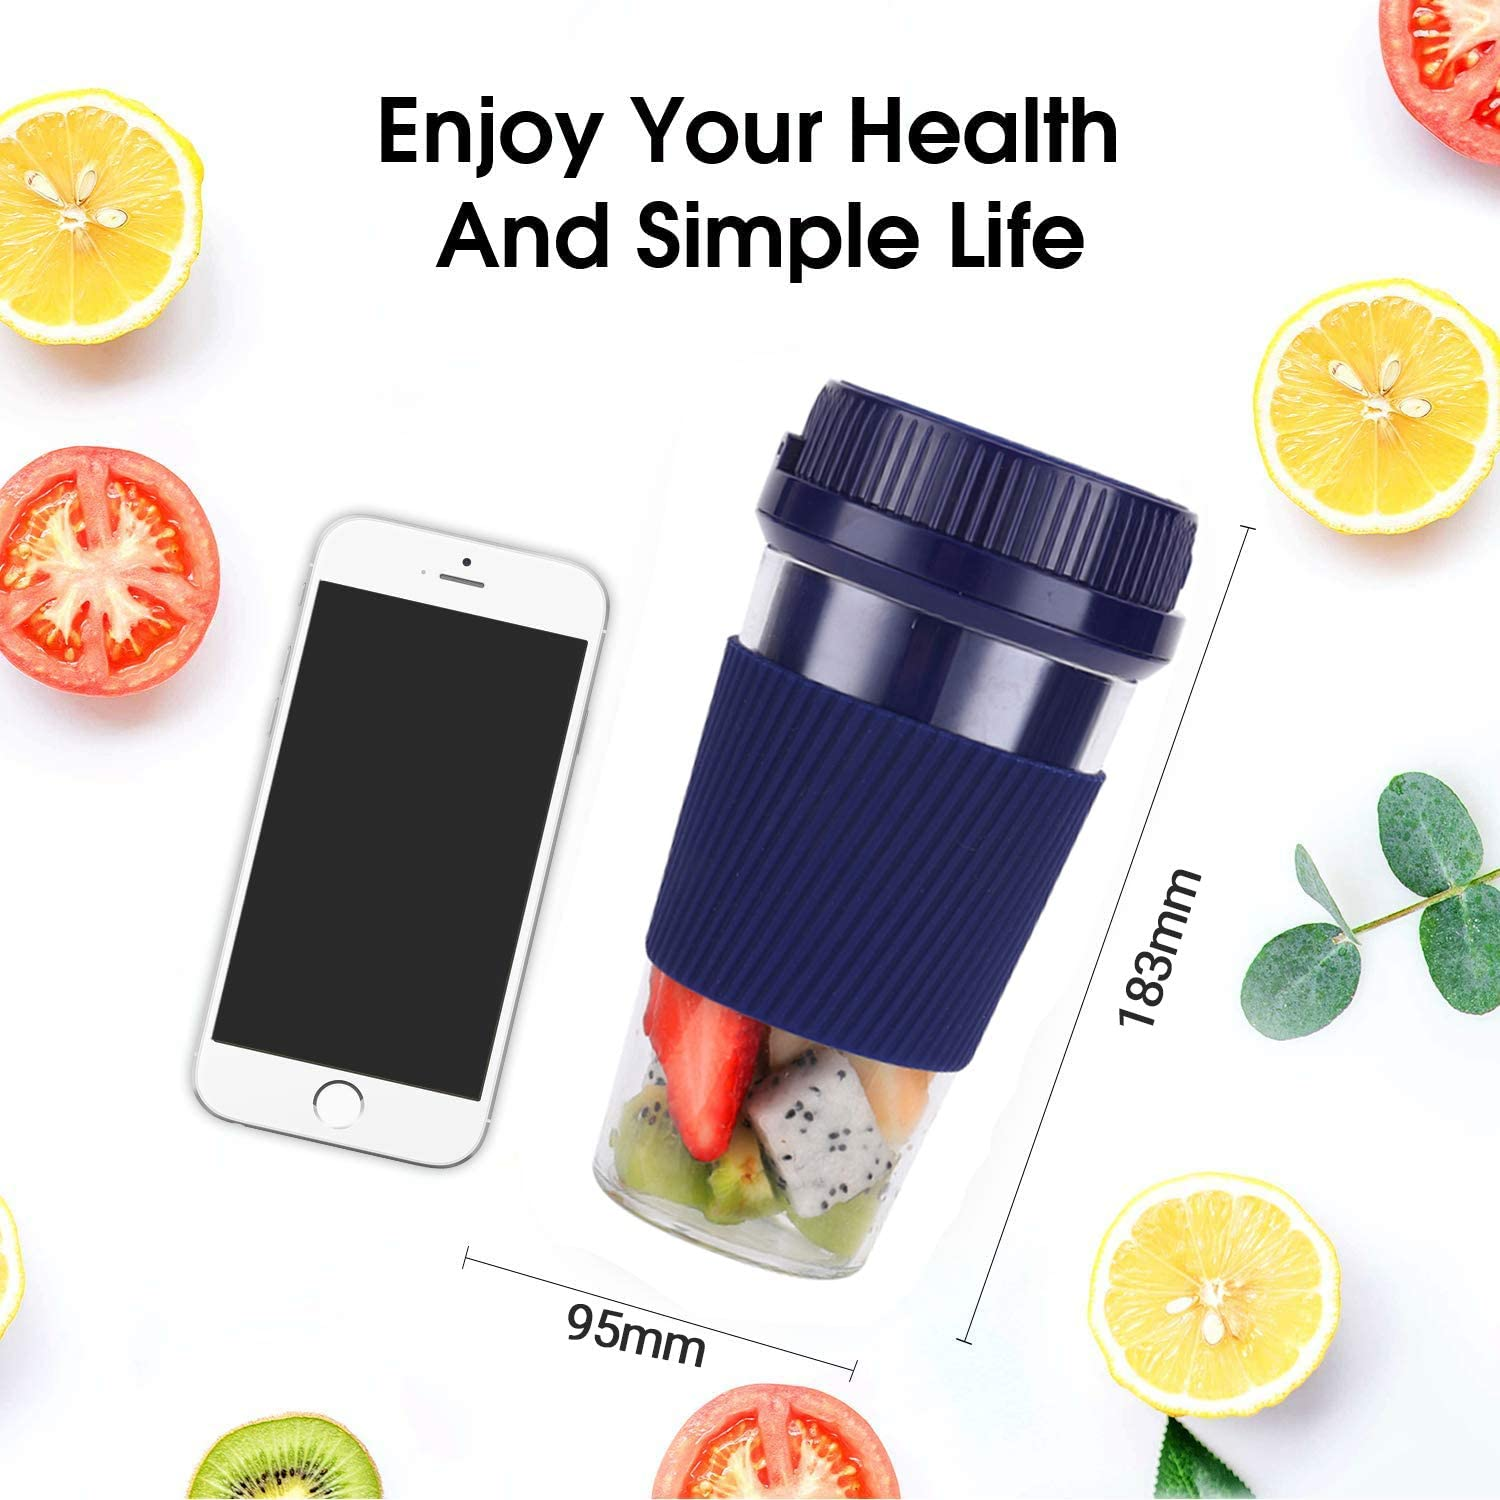 Sifan Portable Blender Mini Personal Blender Home Outdoor Travel Office Portable Mini Juicer Cup Multifunctional Small Household Charging USB Electric Mini Handheld Fruit Juicer,USB Rechargeable BPA Free,10oz//300ml Pink